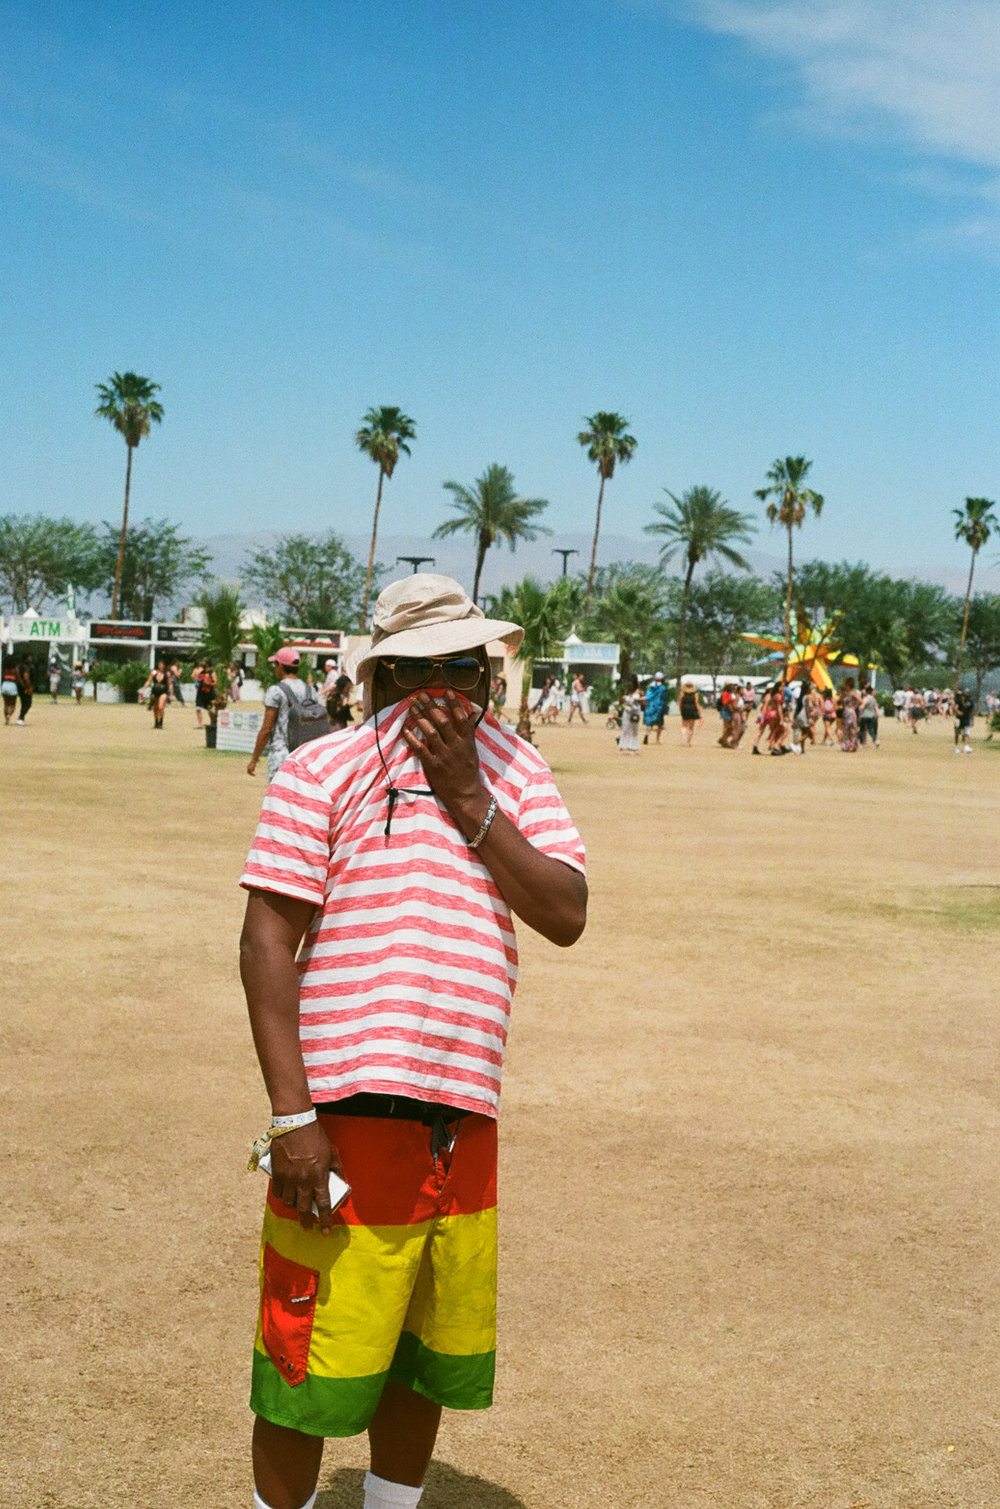 PLNT_MAG_COACHELLA_PHOTOS_19.JPG